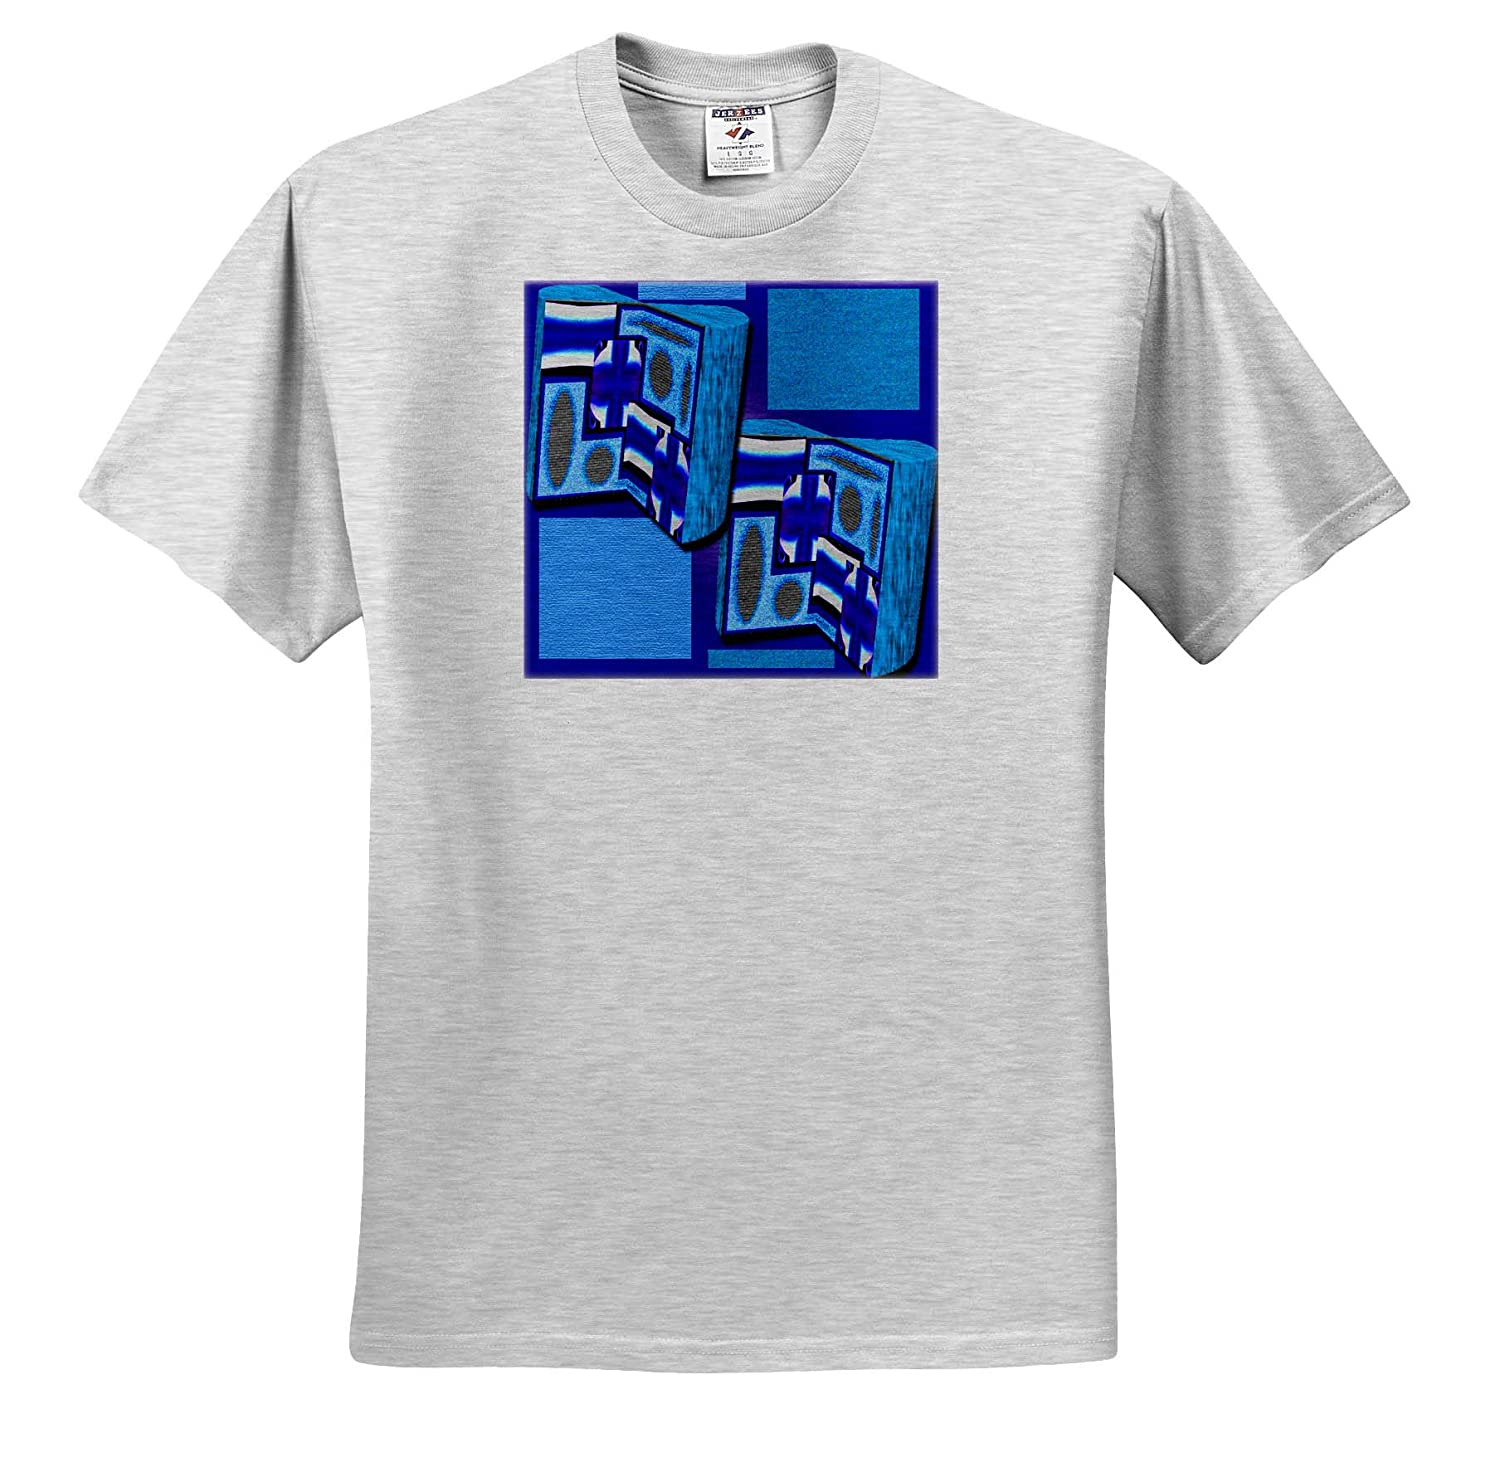 3 Dimensional Shapes Made from Art on Blue and Dark Blue 3D Art Layered and Textured T-Shirts 3dRose Jos Fauxtographee